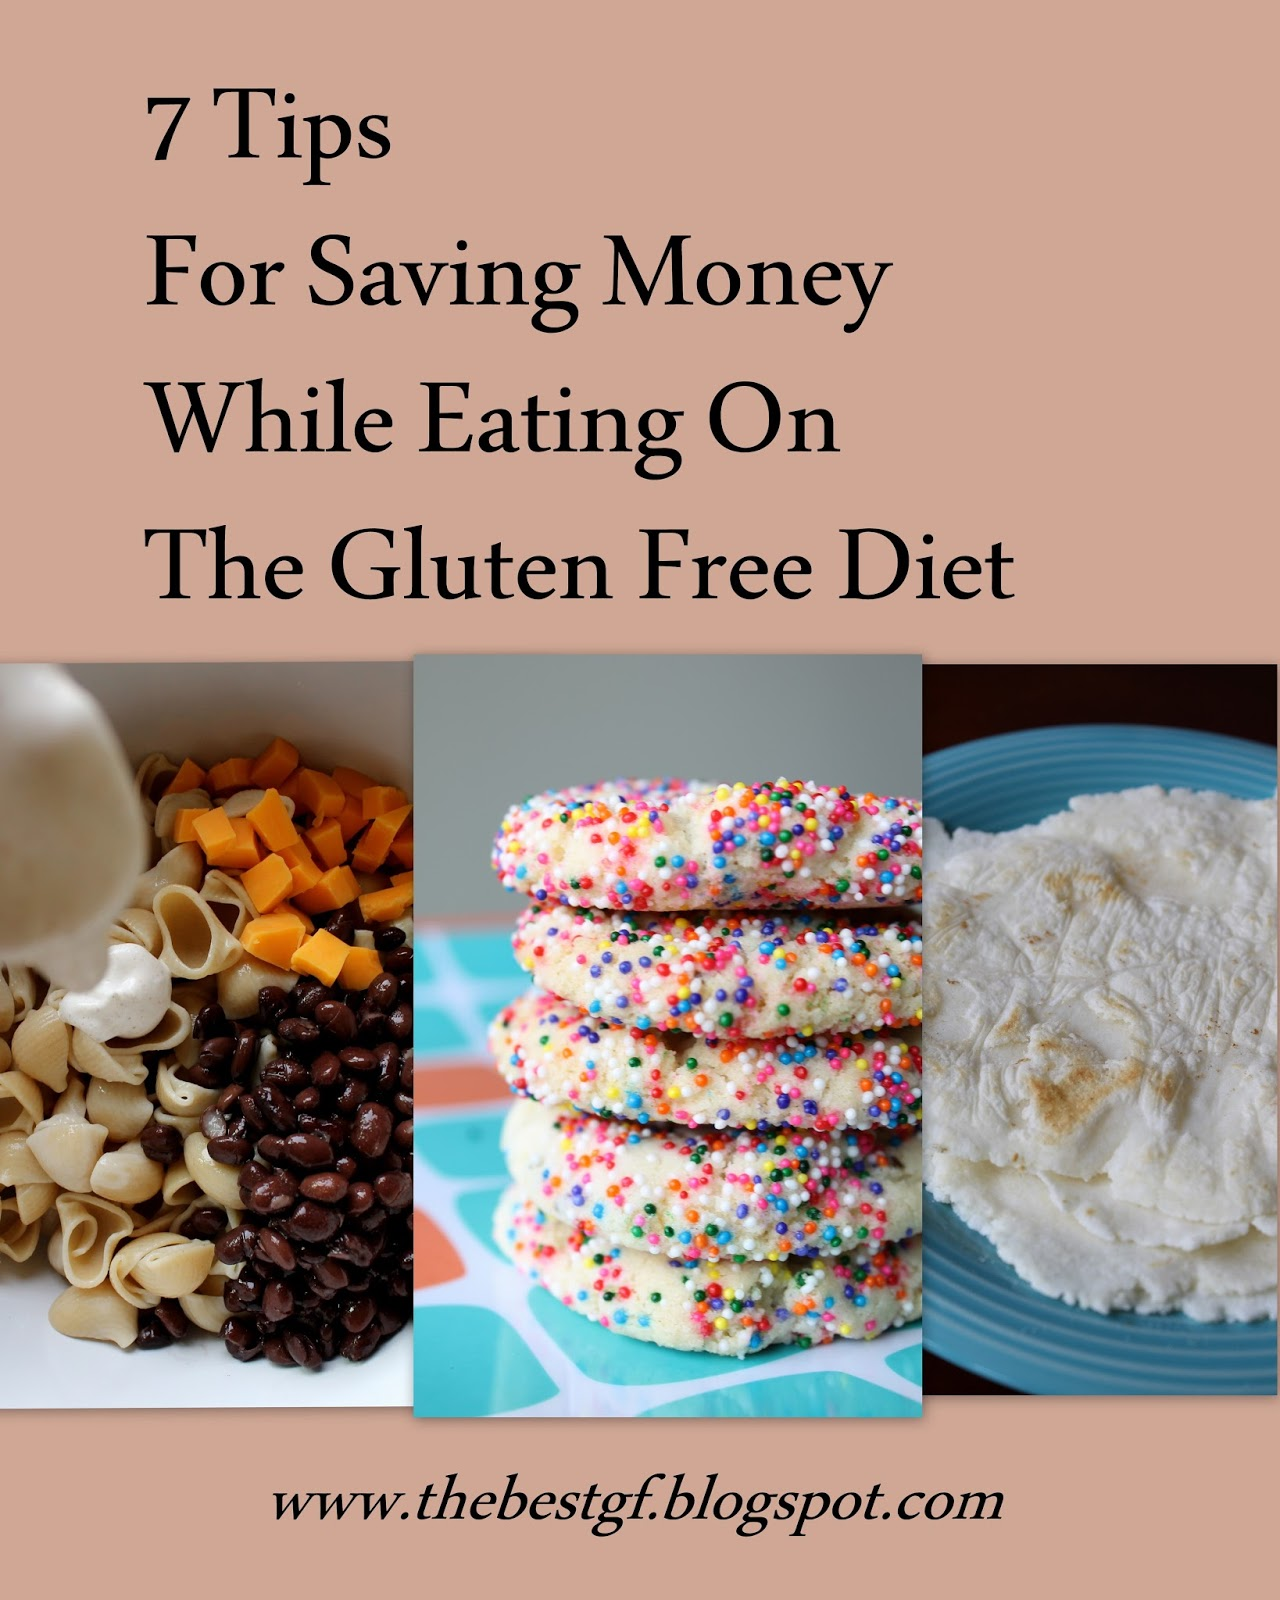 Tips on eating someone out - There Are So Many Ways Someone Can Save Money When Eating Gluten Free Here Are Just Seven Ideas For Anyone Who Is Eating Gluten Free Or Considering The